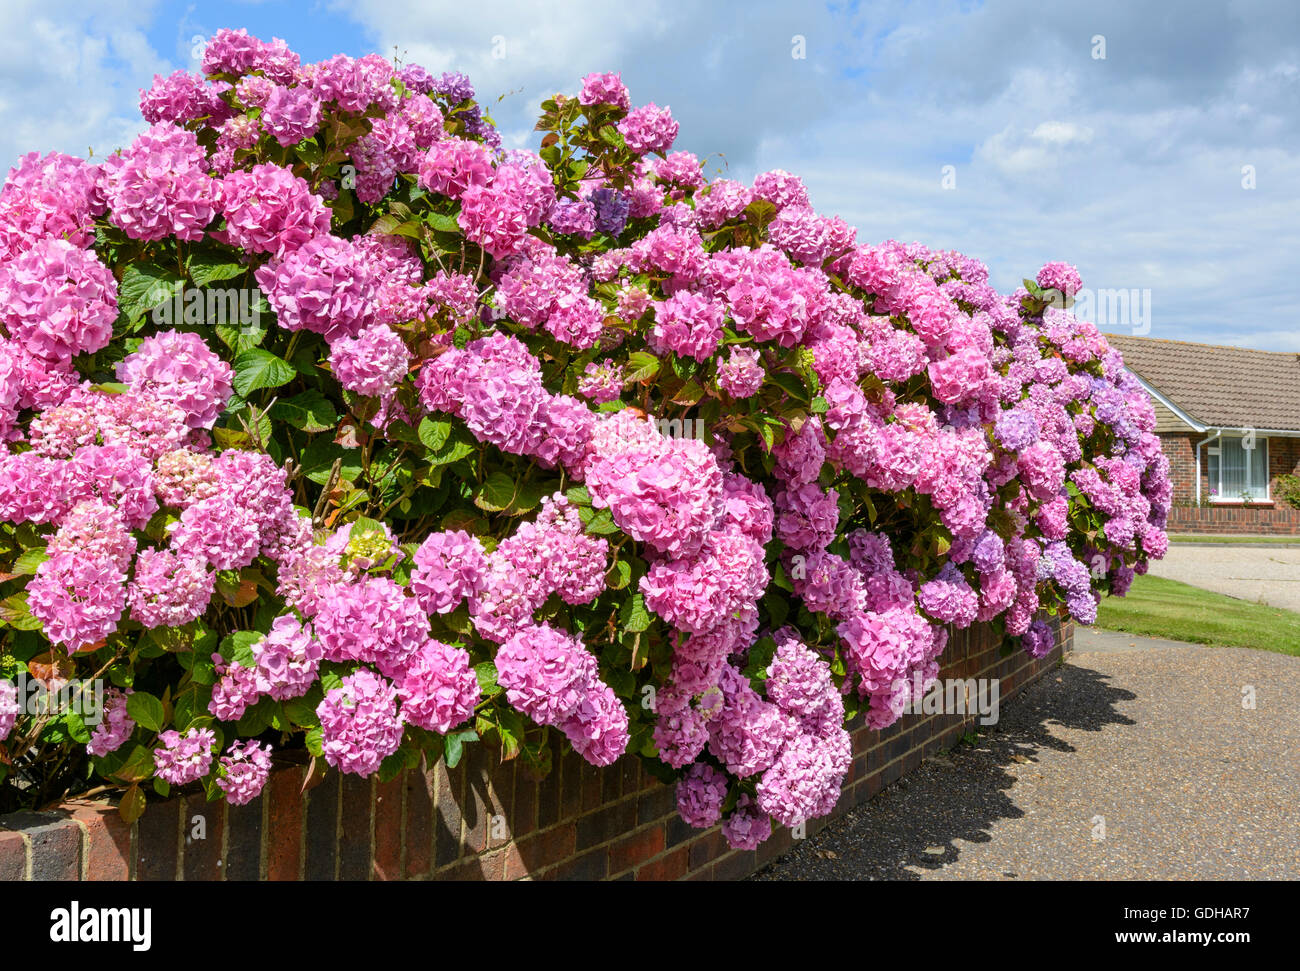 Bush of pink Bigleaf hydrangea (Hydrangea macrophylla) flowers growing in Summer in the UK. - Stock Image